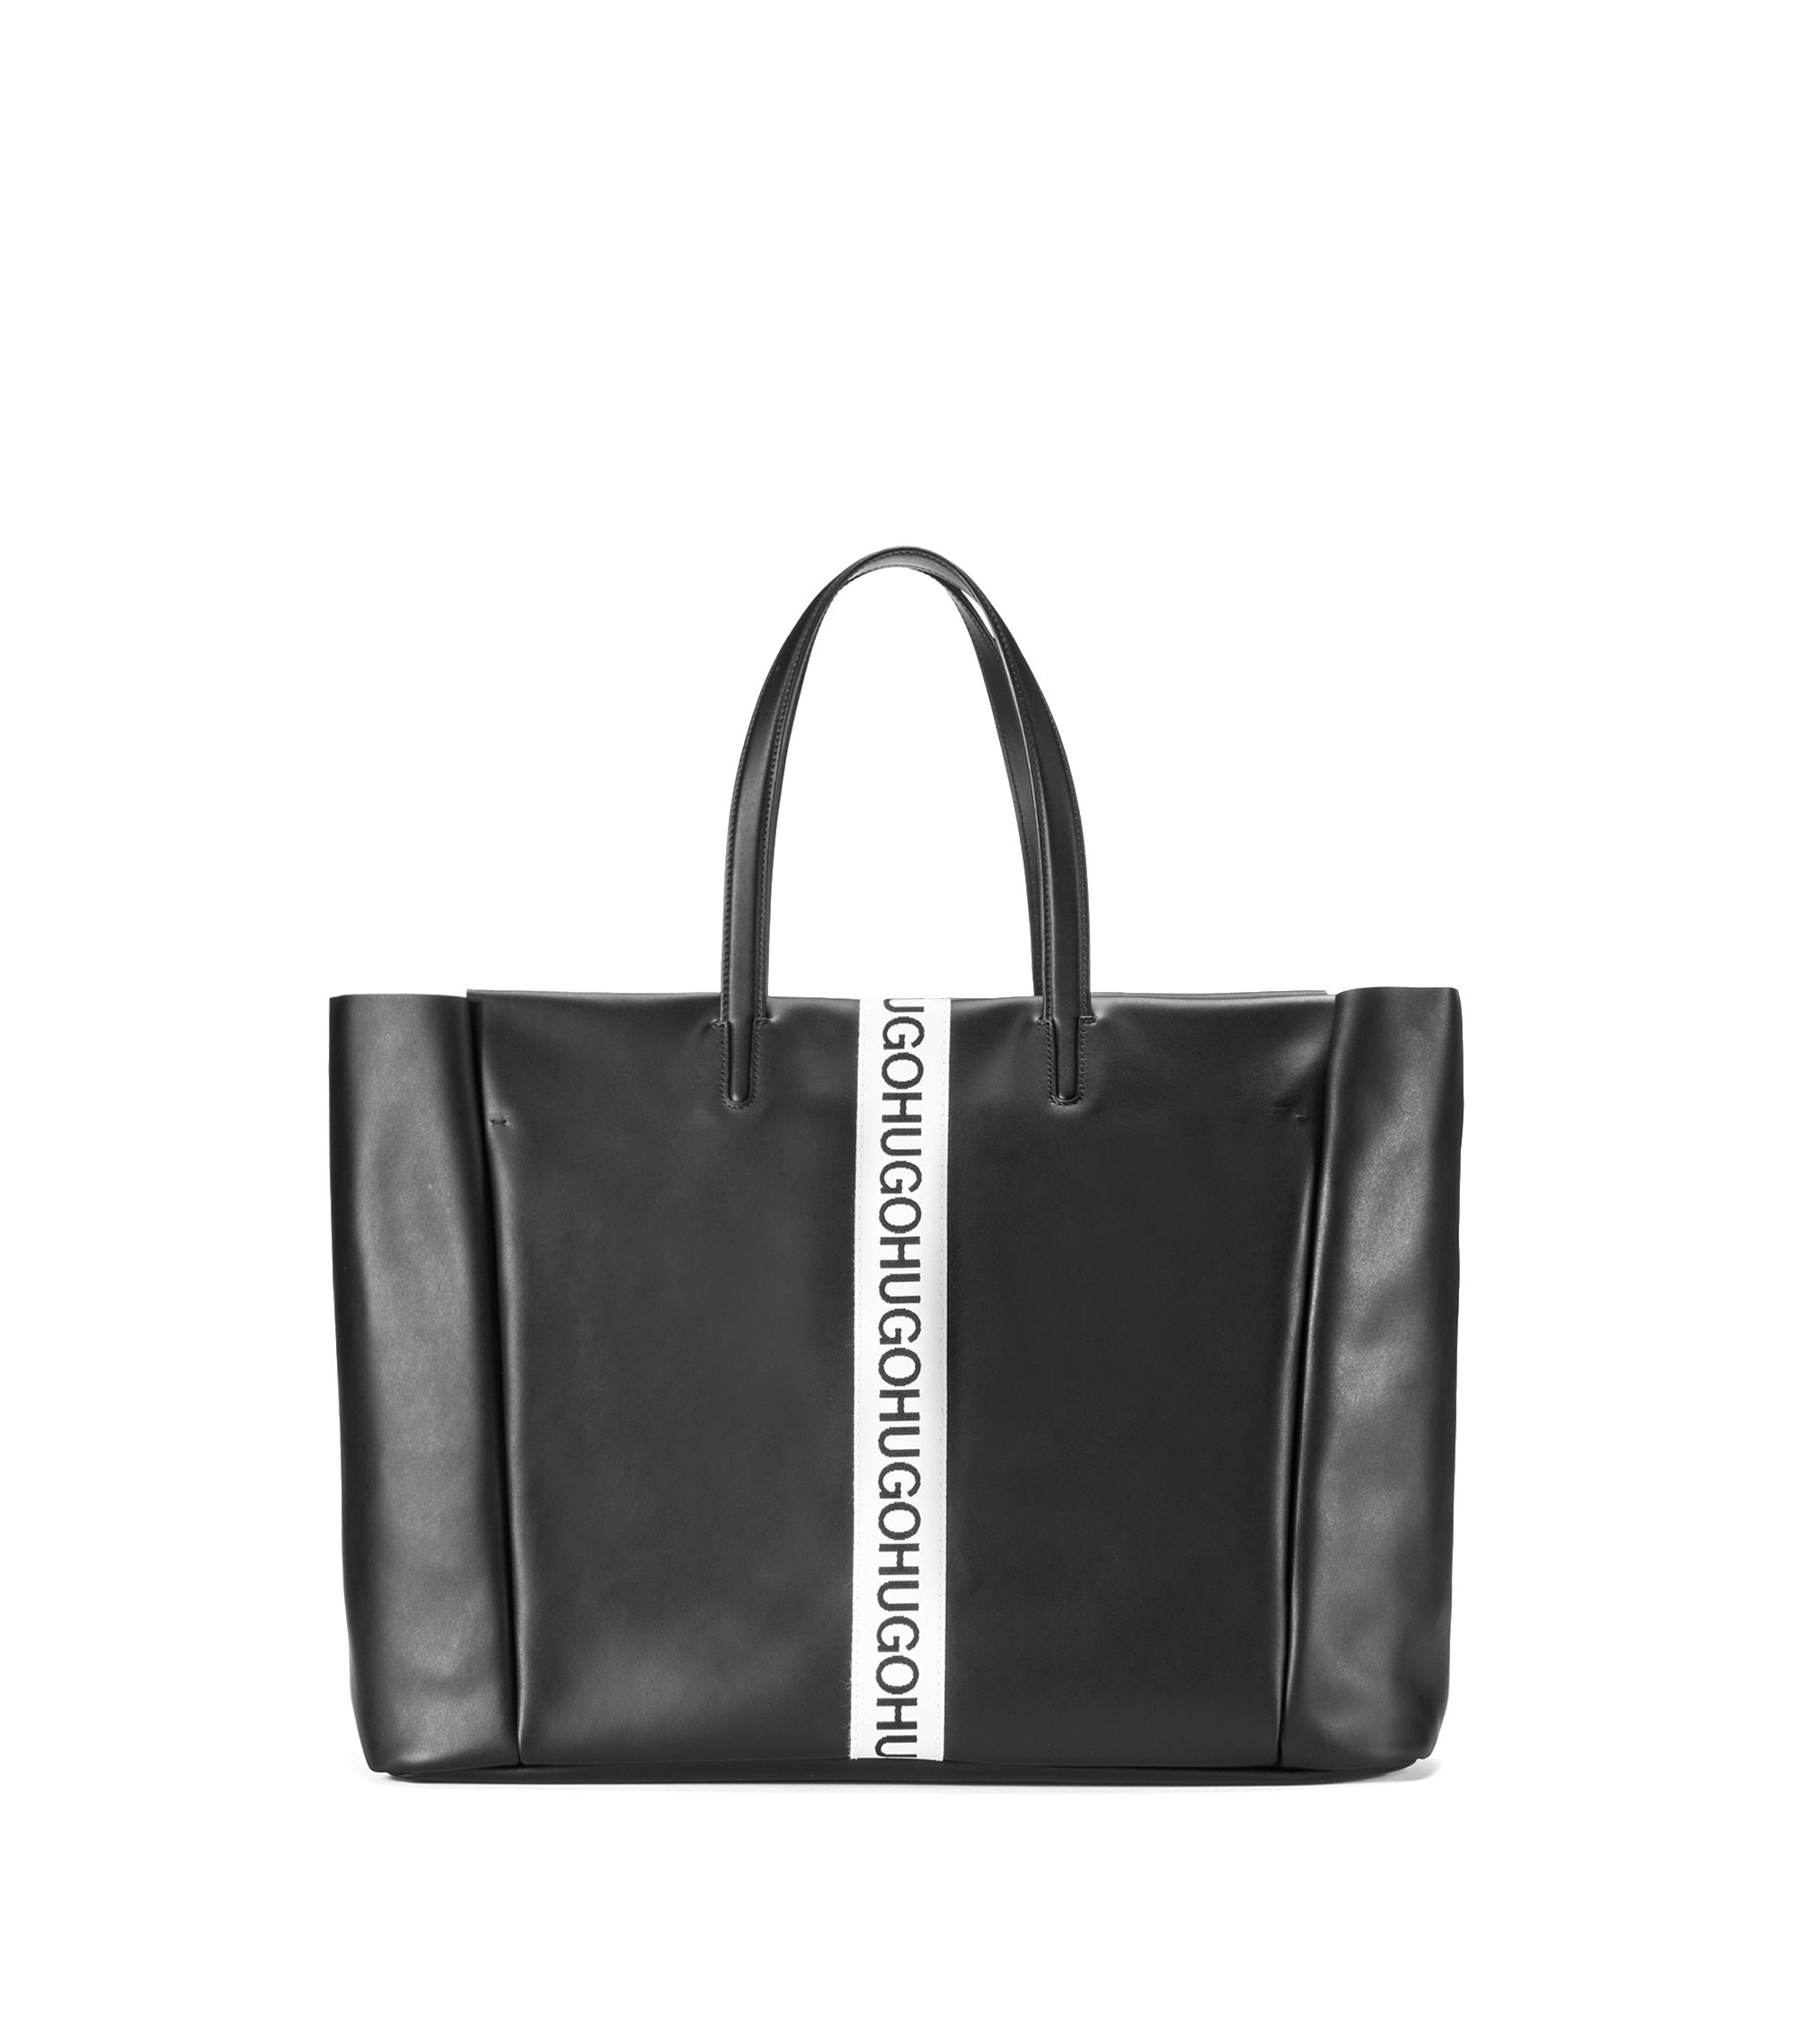 Borsa shopper in pelle con striscia con logo, Nero